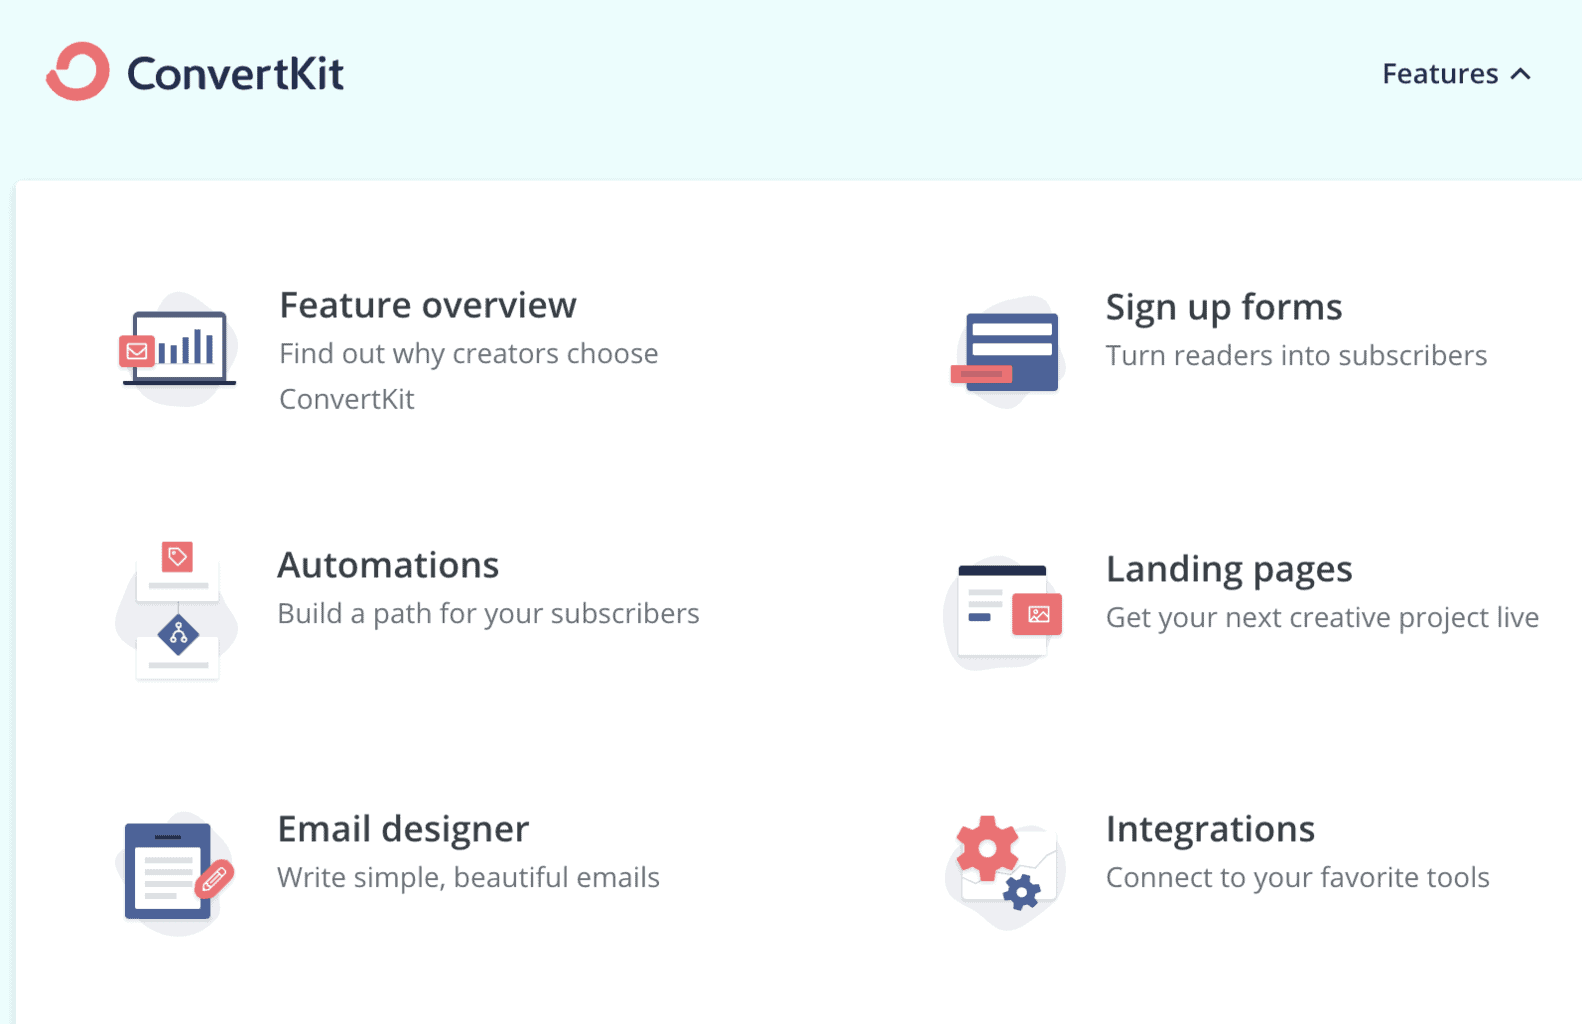 ConvertKit features